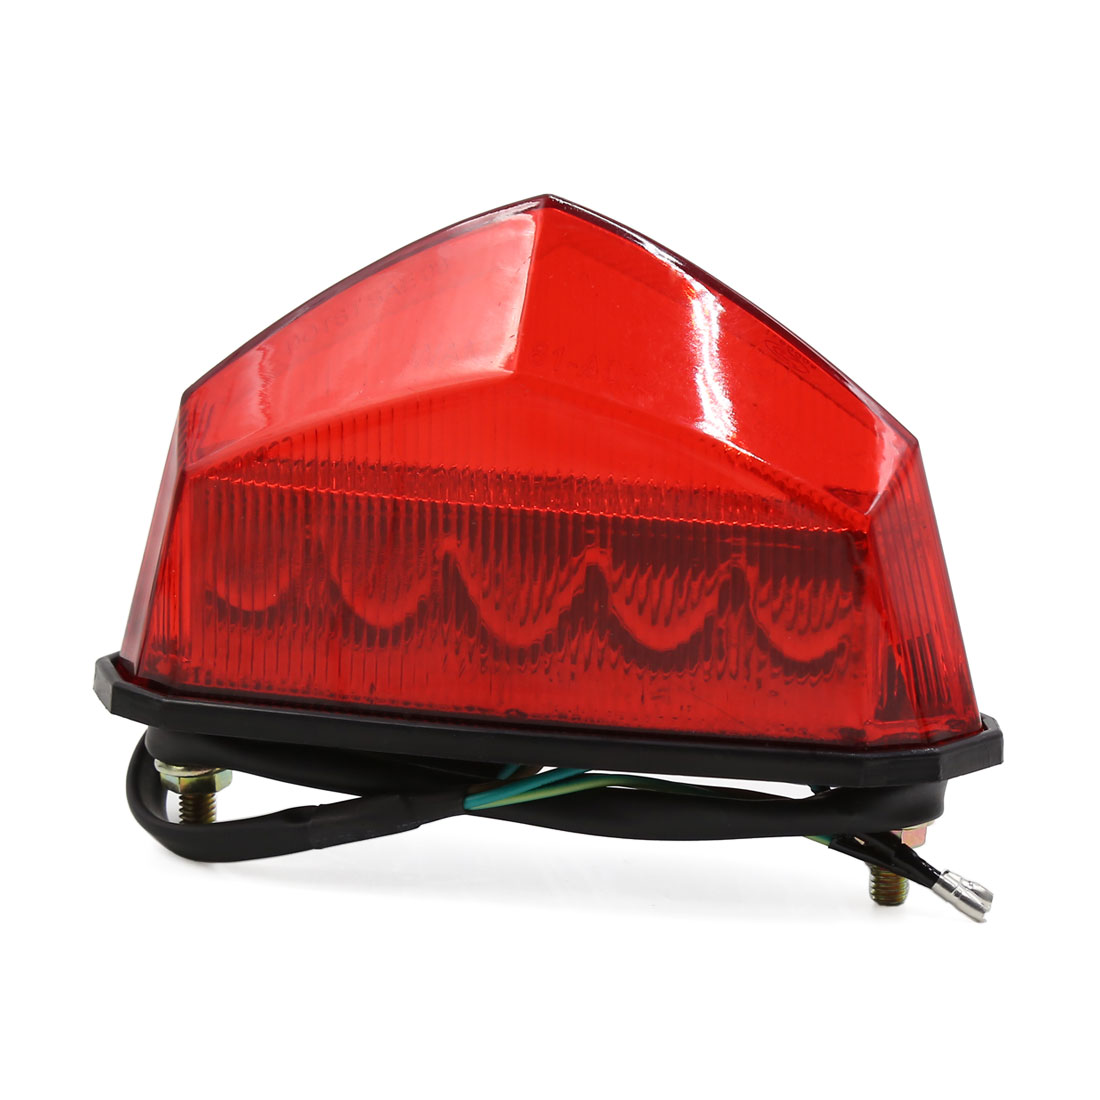 DC 12V 10 LED Red Tail Light Brake Stop Lamp for Motorcycle Scooter